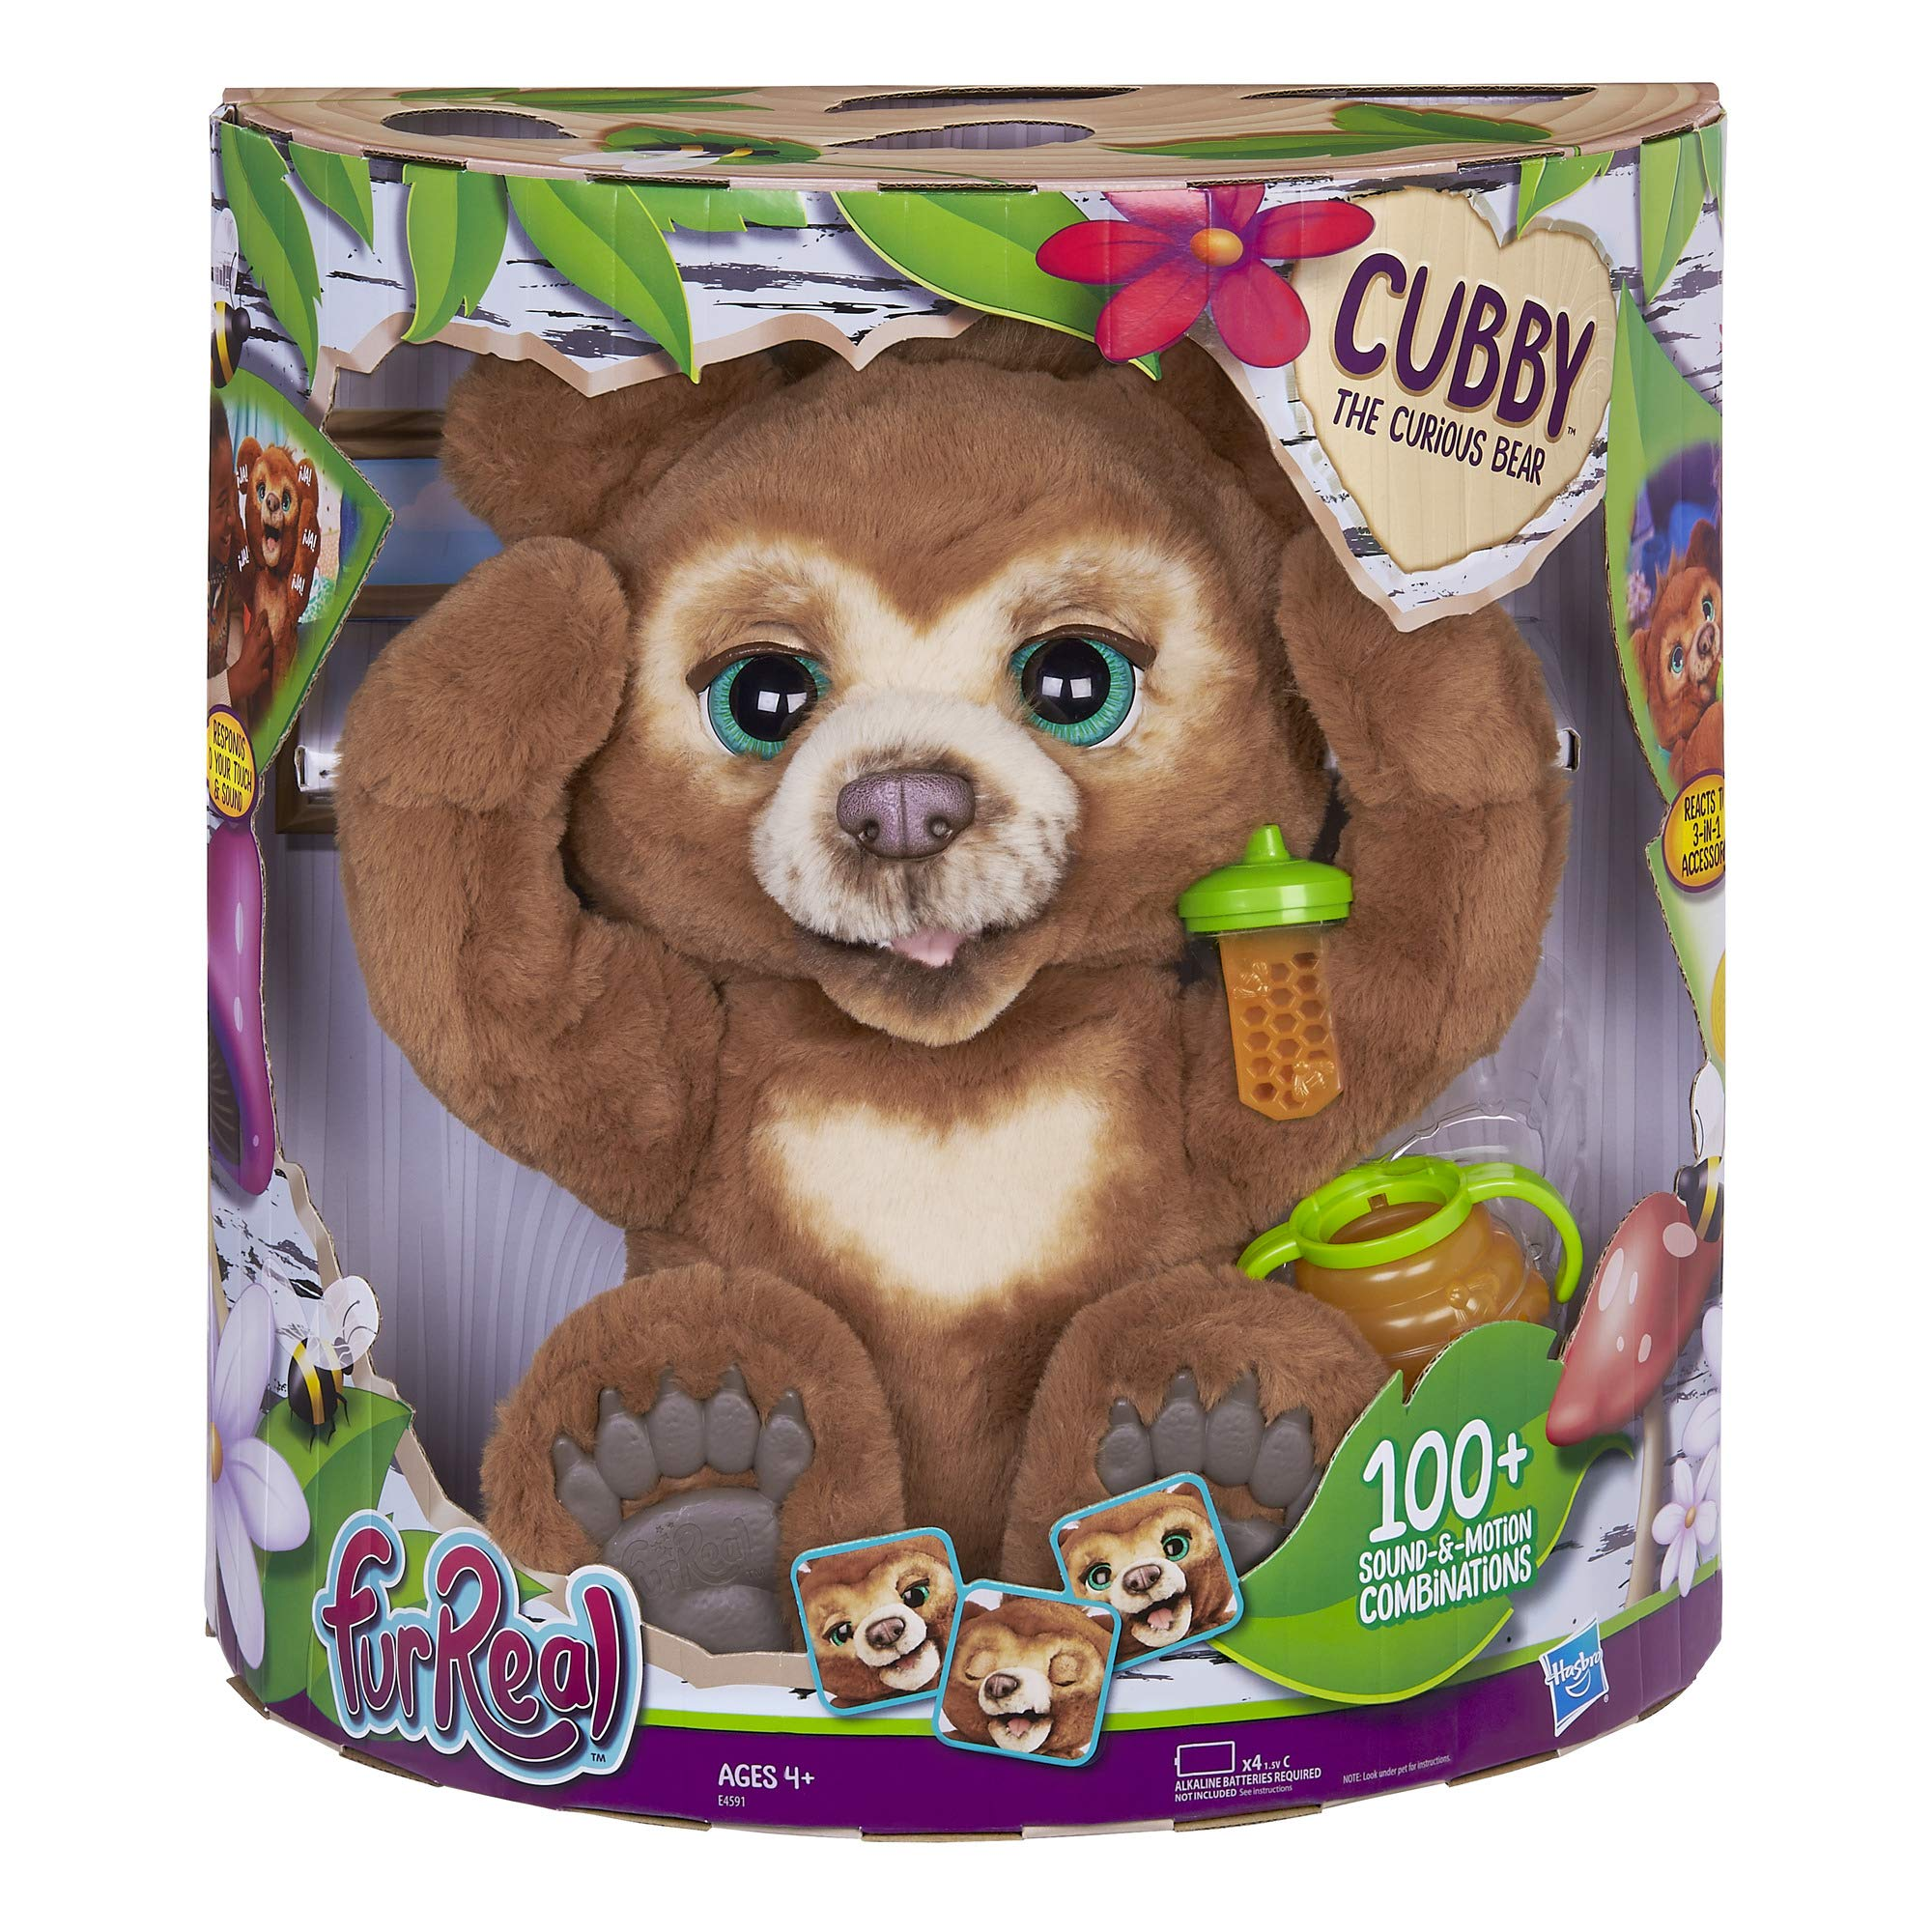 FurReal Cubby, The Curious Bear Interactive Plush Toy, Ages 4 and Up by FurReal (Image #2)